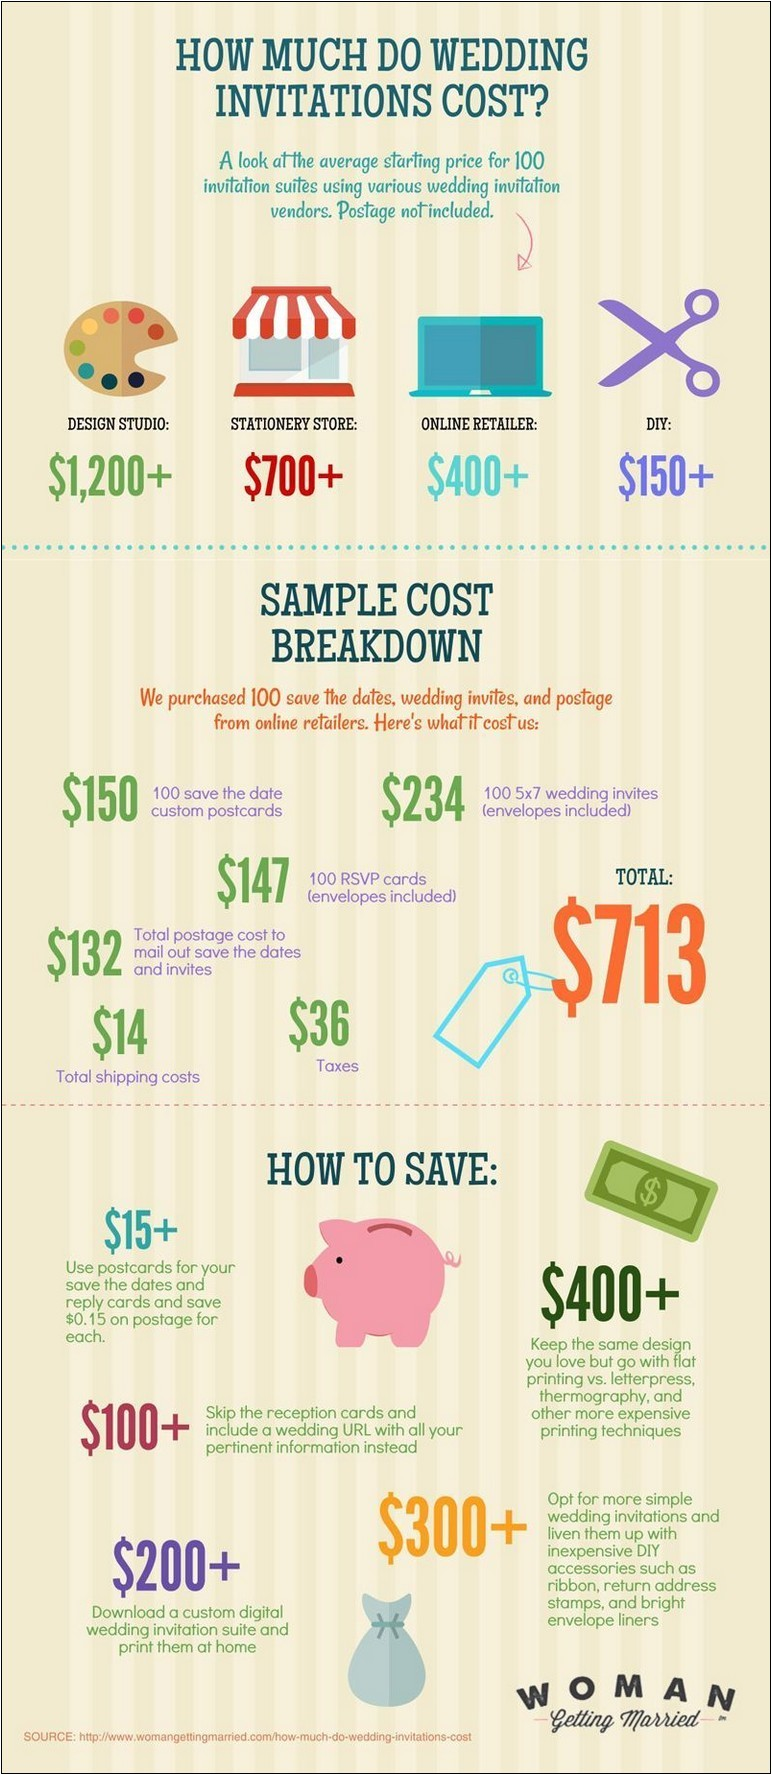 average cost of wedding invitations for 100 guests